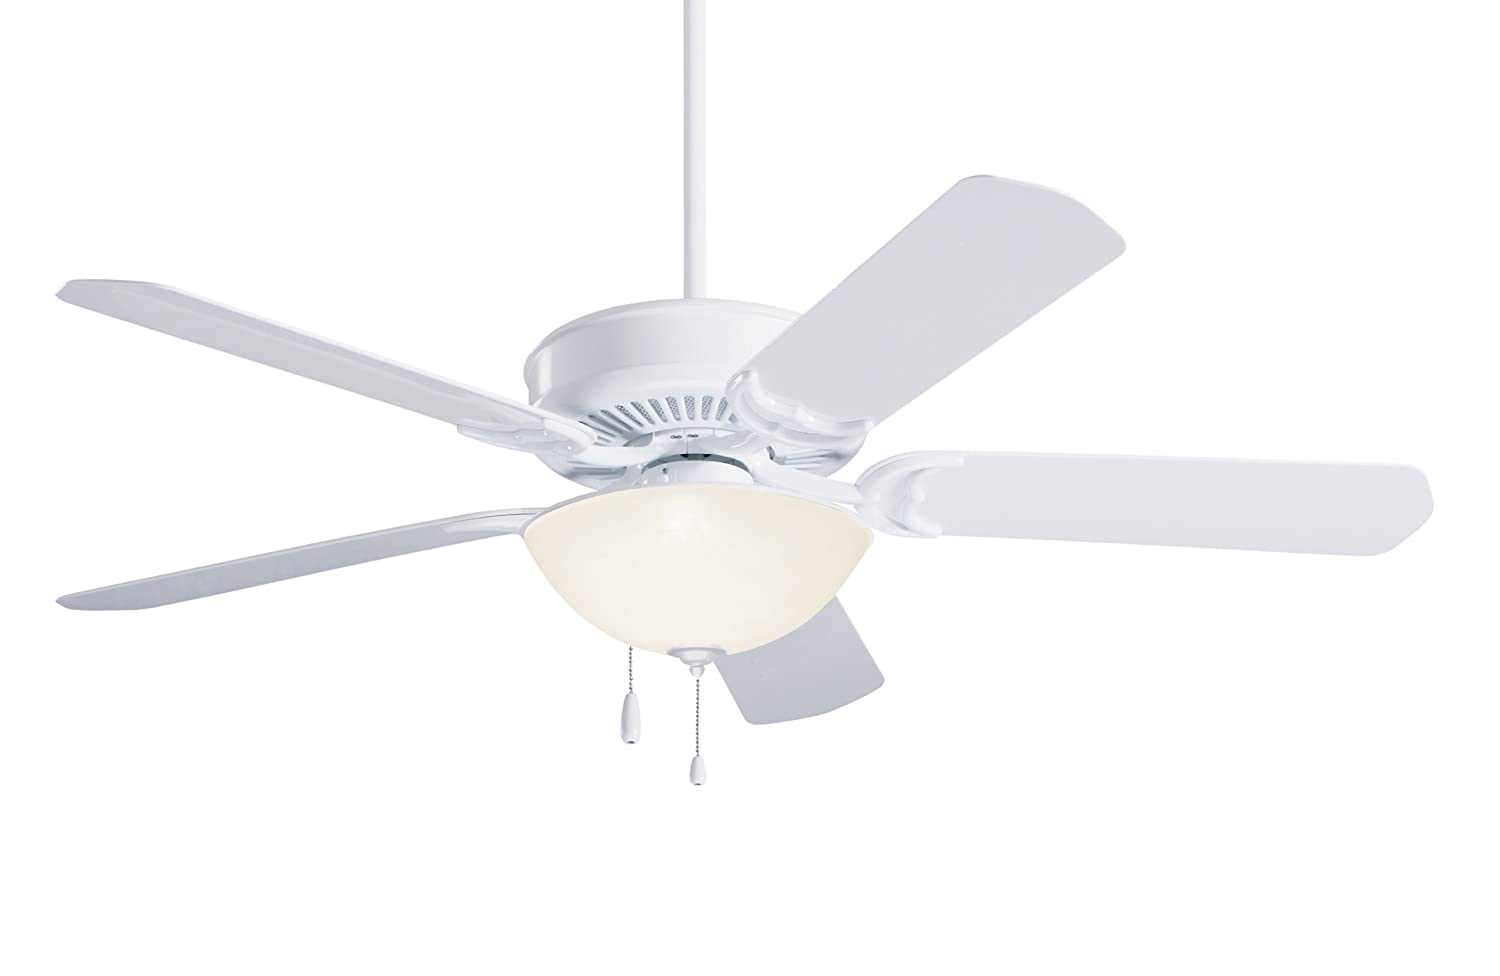 Emerson ceiling fans cf654ww sea breeze 52 inch indoor outdoor emerson ceiling fans cf654ww sea breeze 52 inch indoor outdoor ceiling fan wet rated light kit adaptable appliance white finish amazon aloadofball Choice Image